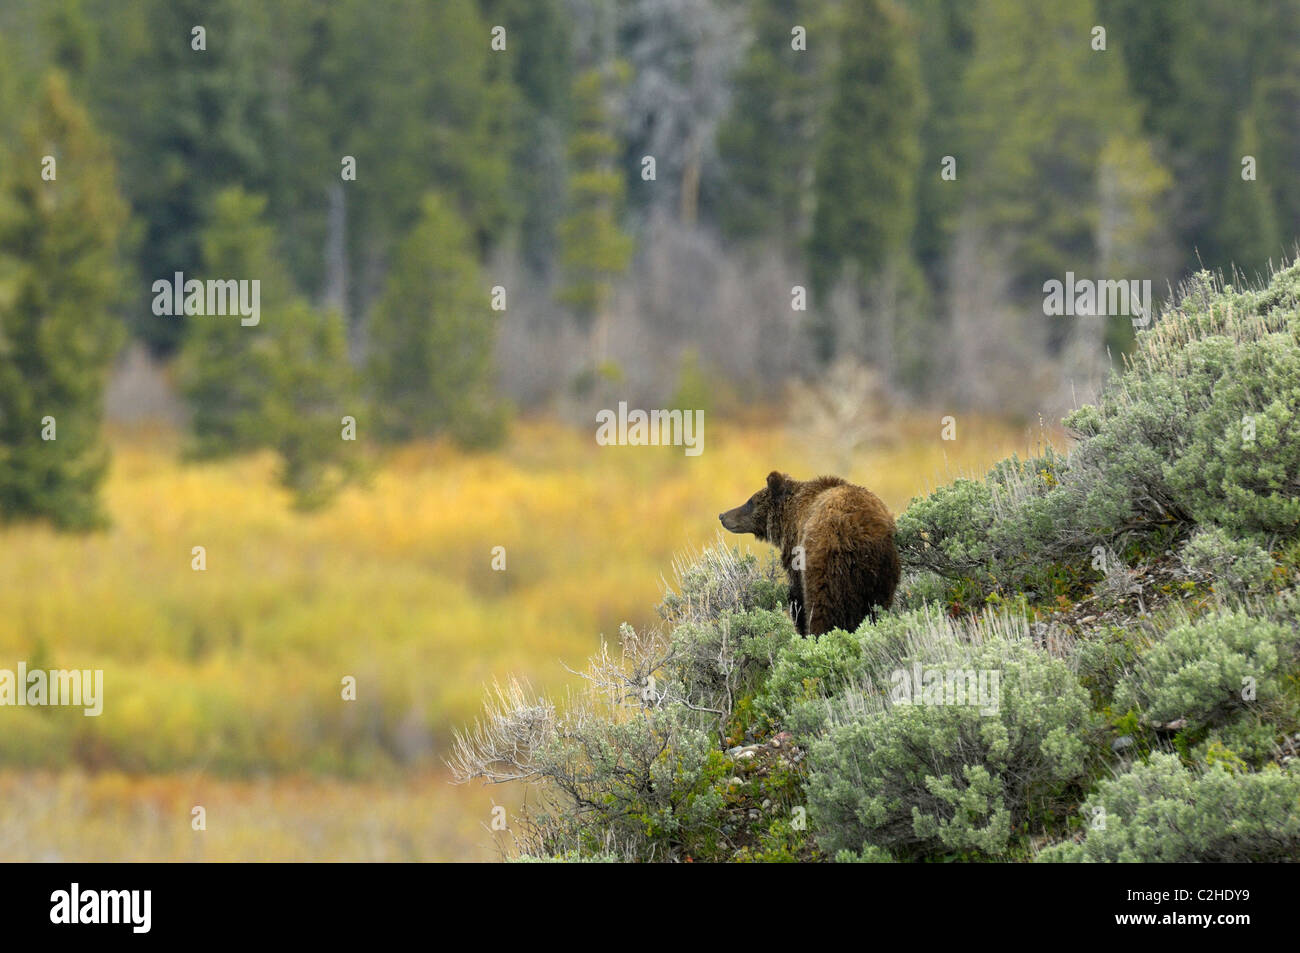 Grizzly Bear pastel - Stock Image